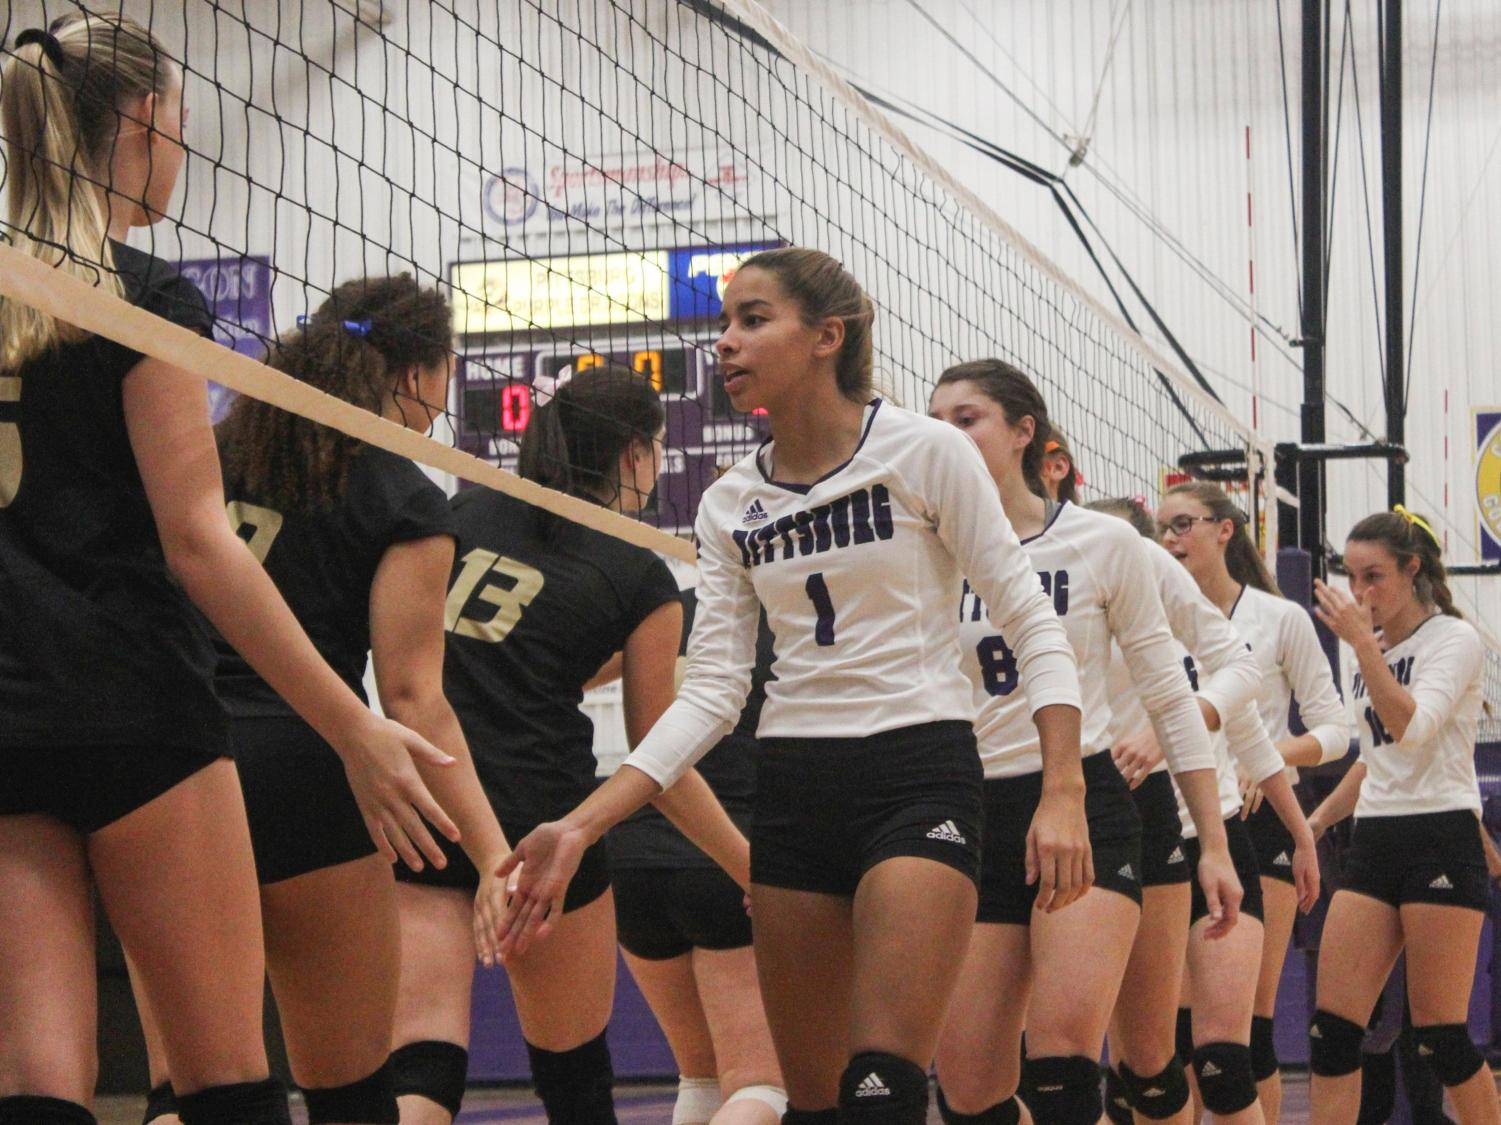 Preparing to start the game against Paola, junior Faith Turner and members of the varsity team slap hands before the first match, Phs defeated Paola in three matches, 25-11, 25-22,25-20.